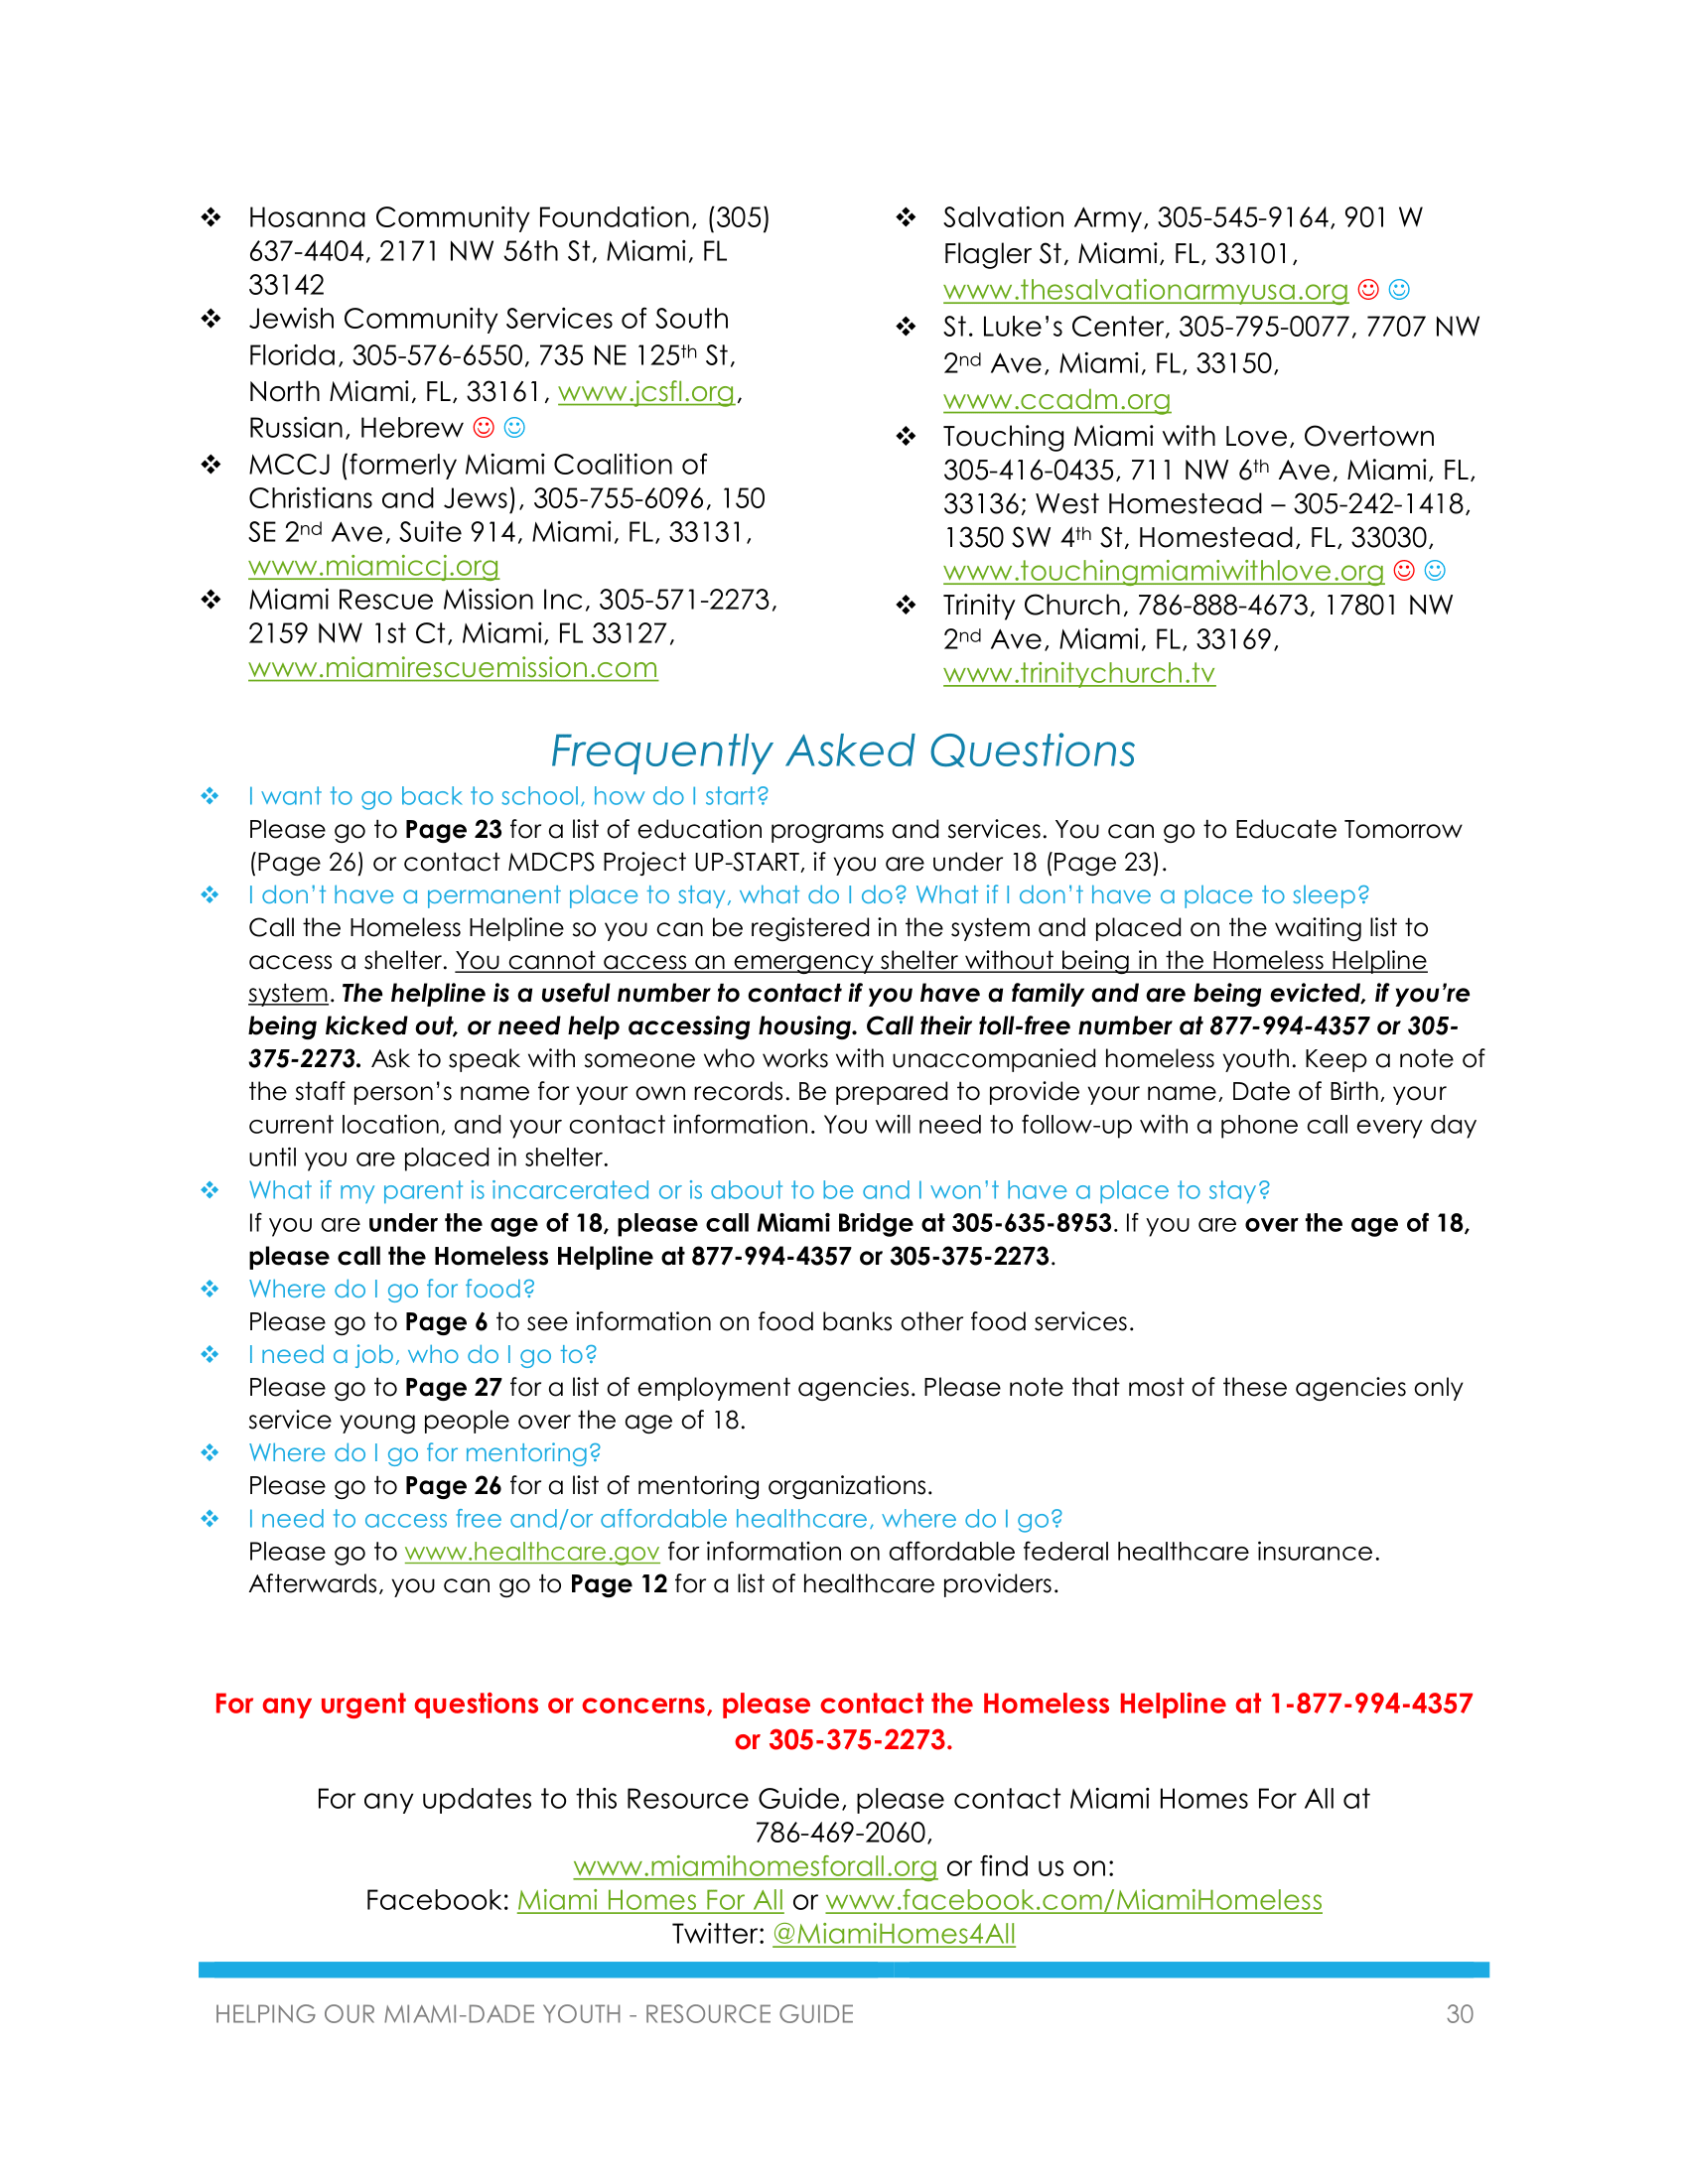 Youth Resource Guide - May 2018-35.png